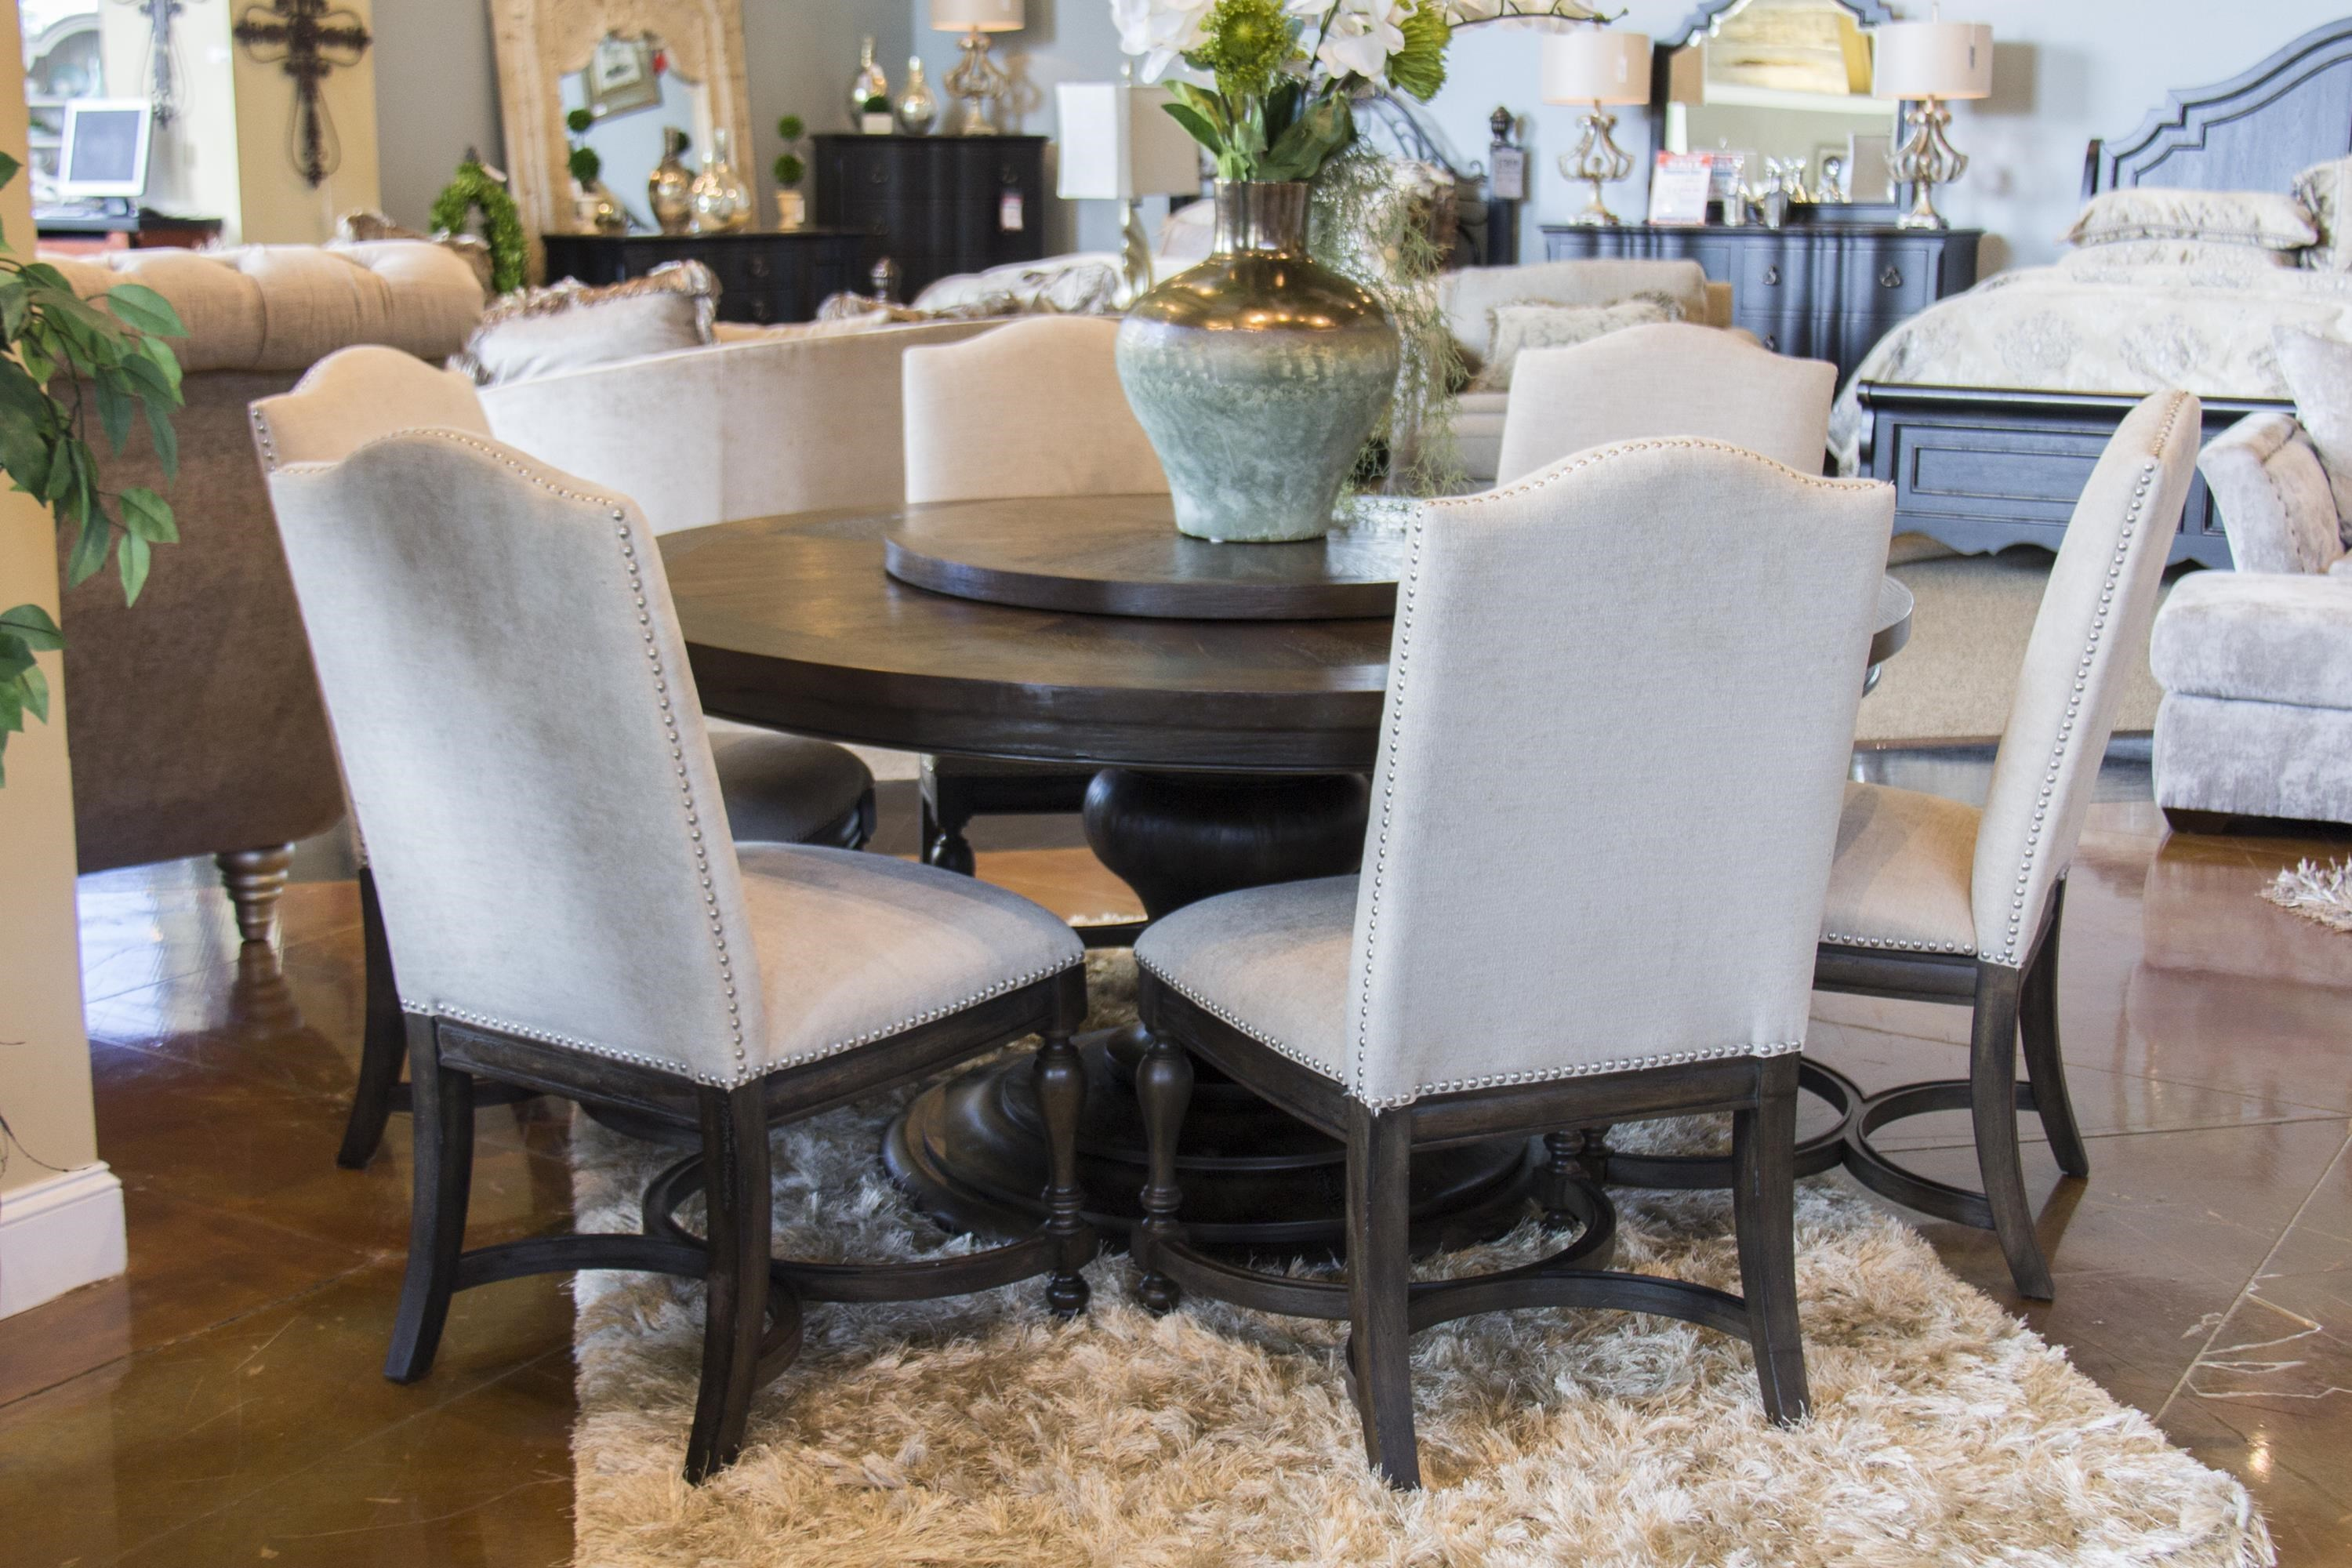 Genial Home Insights VenetianRound Dining Table U0026 6 Upholstered Chairs